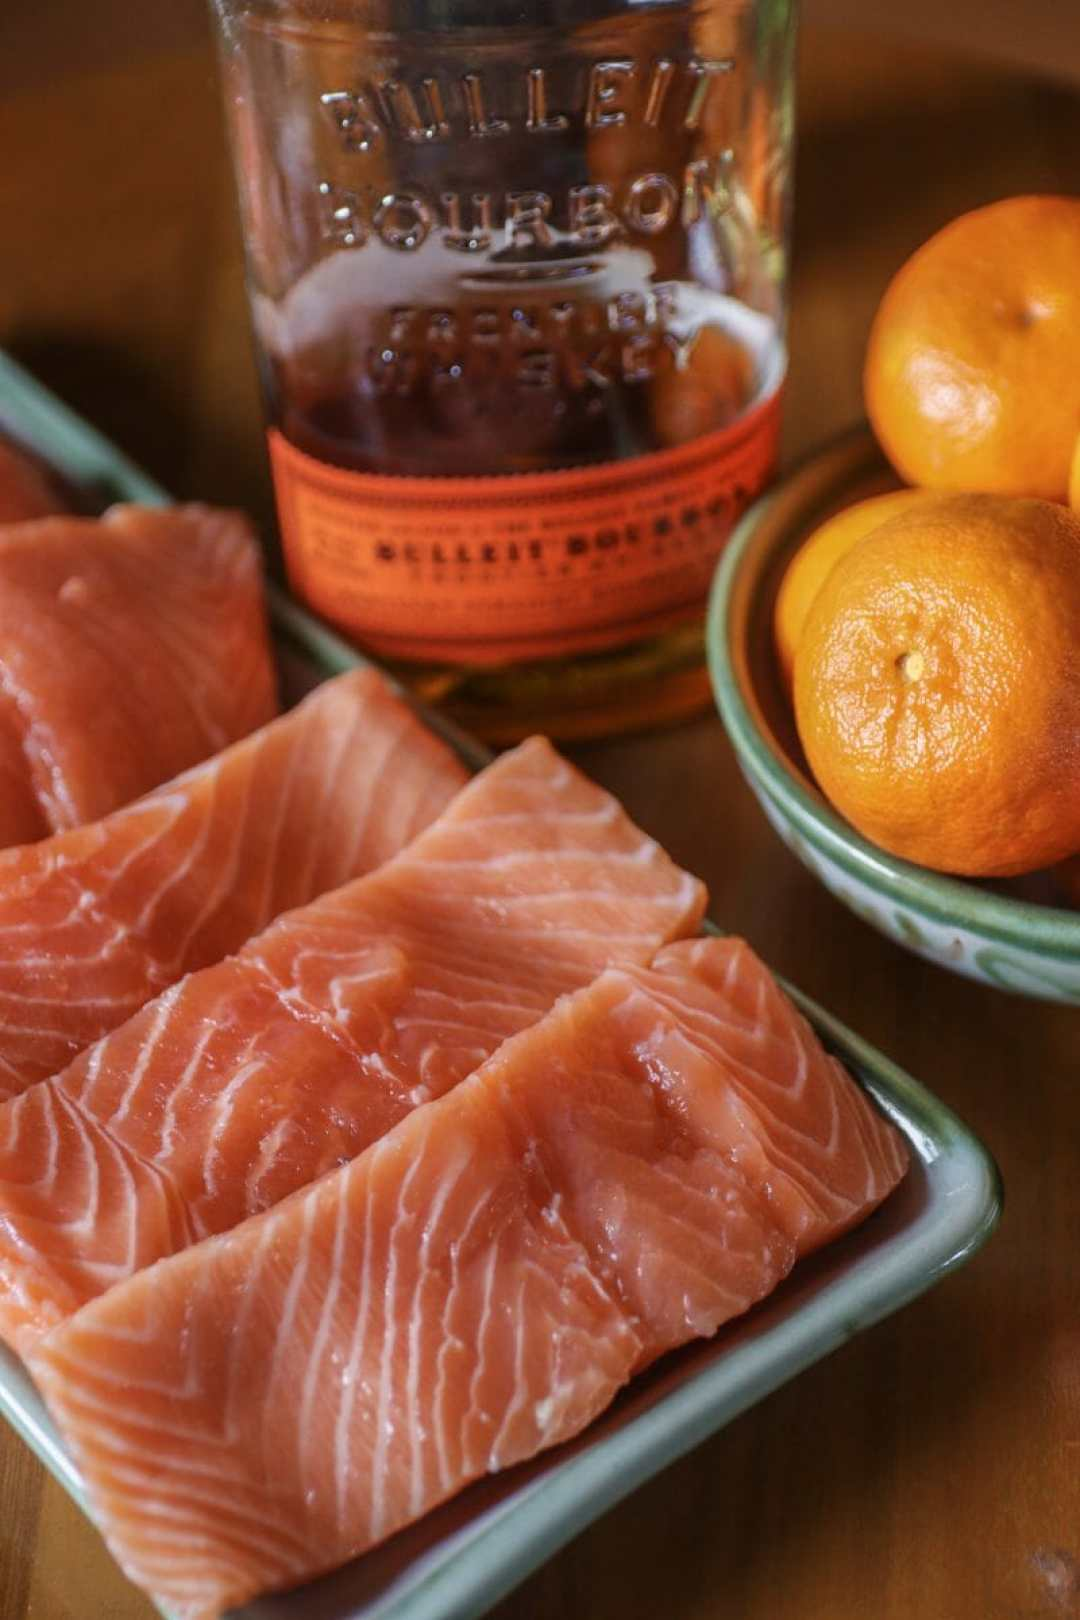 Kentucky Bourbon + Mandarin Orange Juice Glazed Salmon - A Recipe by JC Phelps of JCP Eats, a Kentucky-based Food, Travel, and Lifestyle Blog